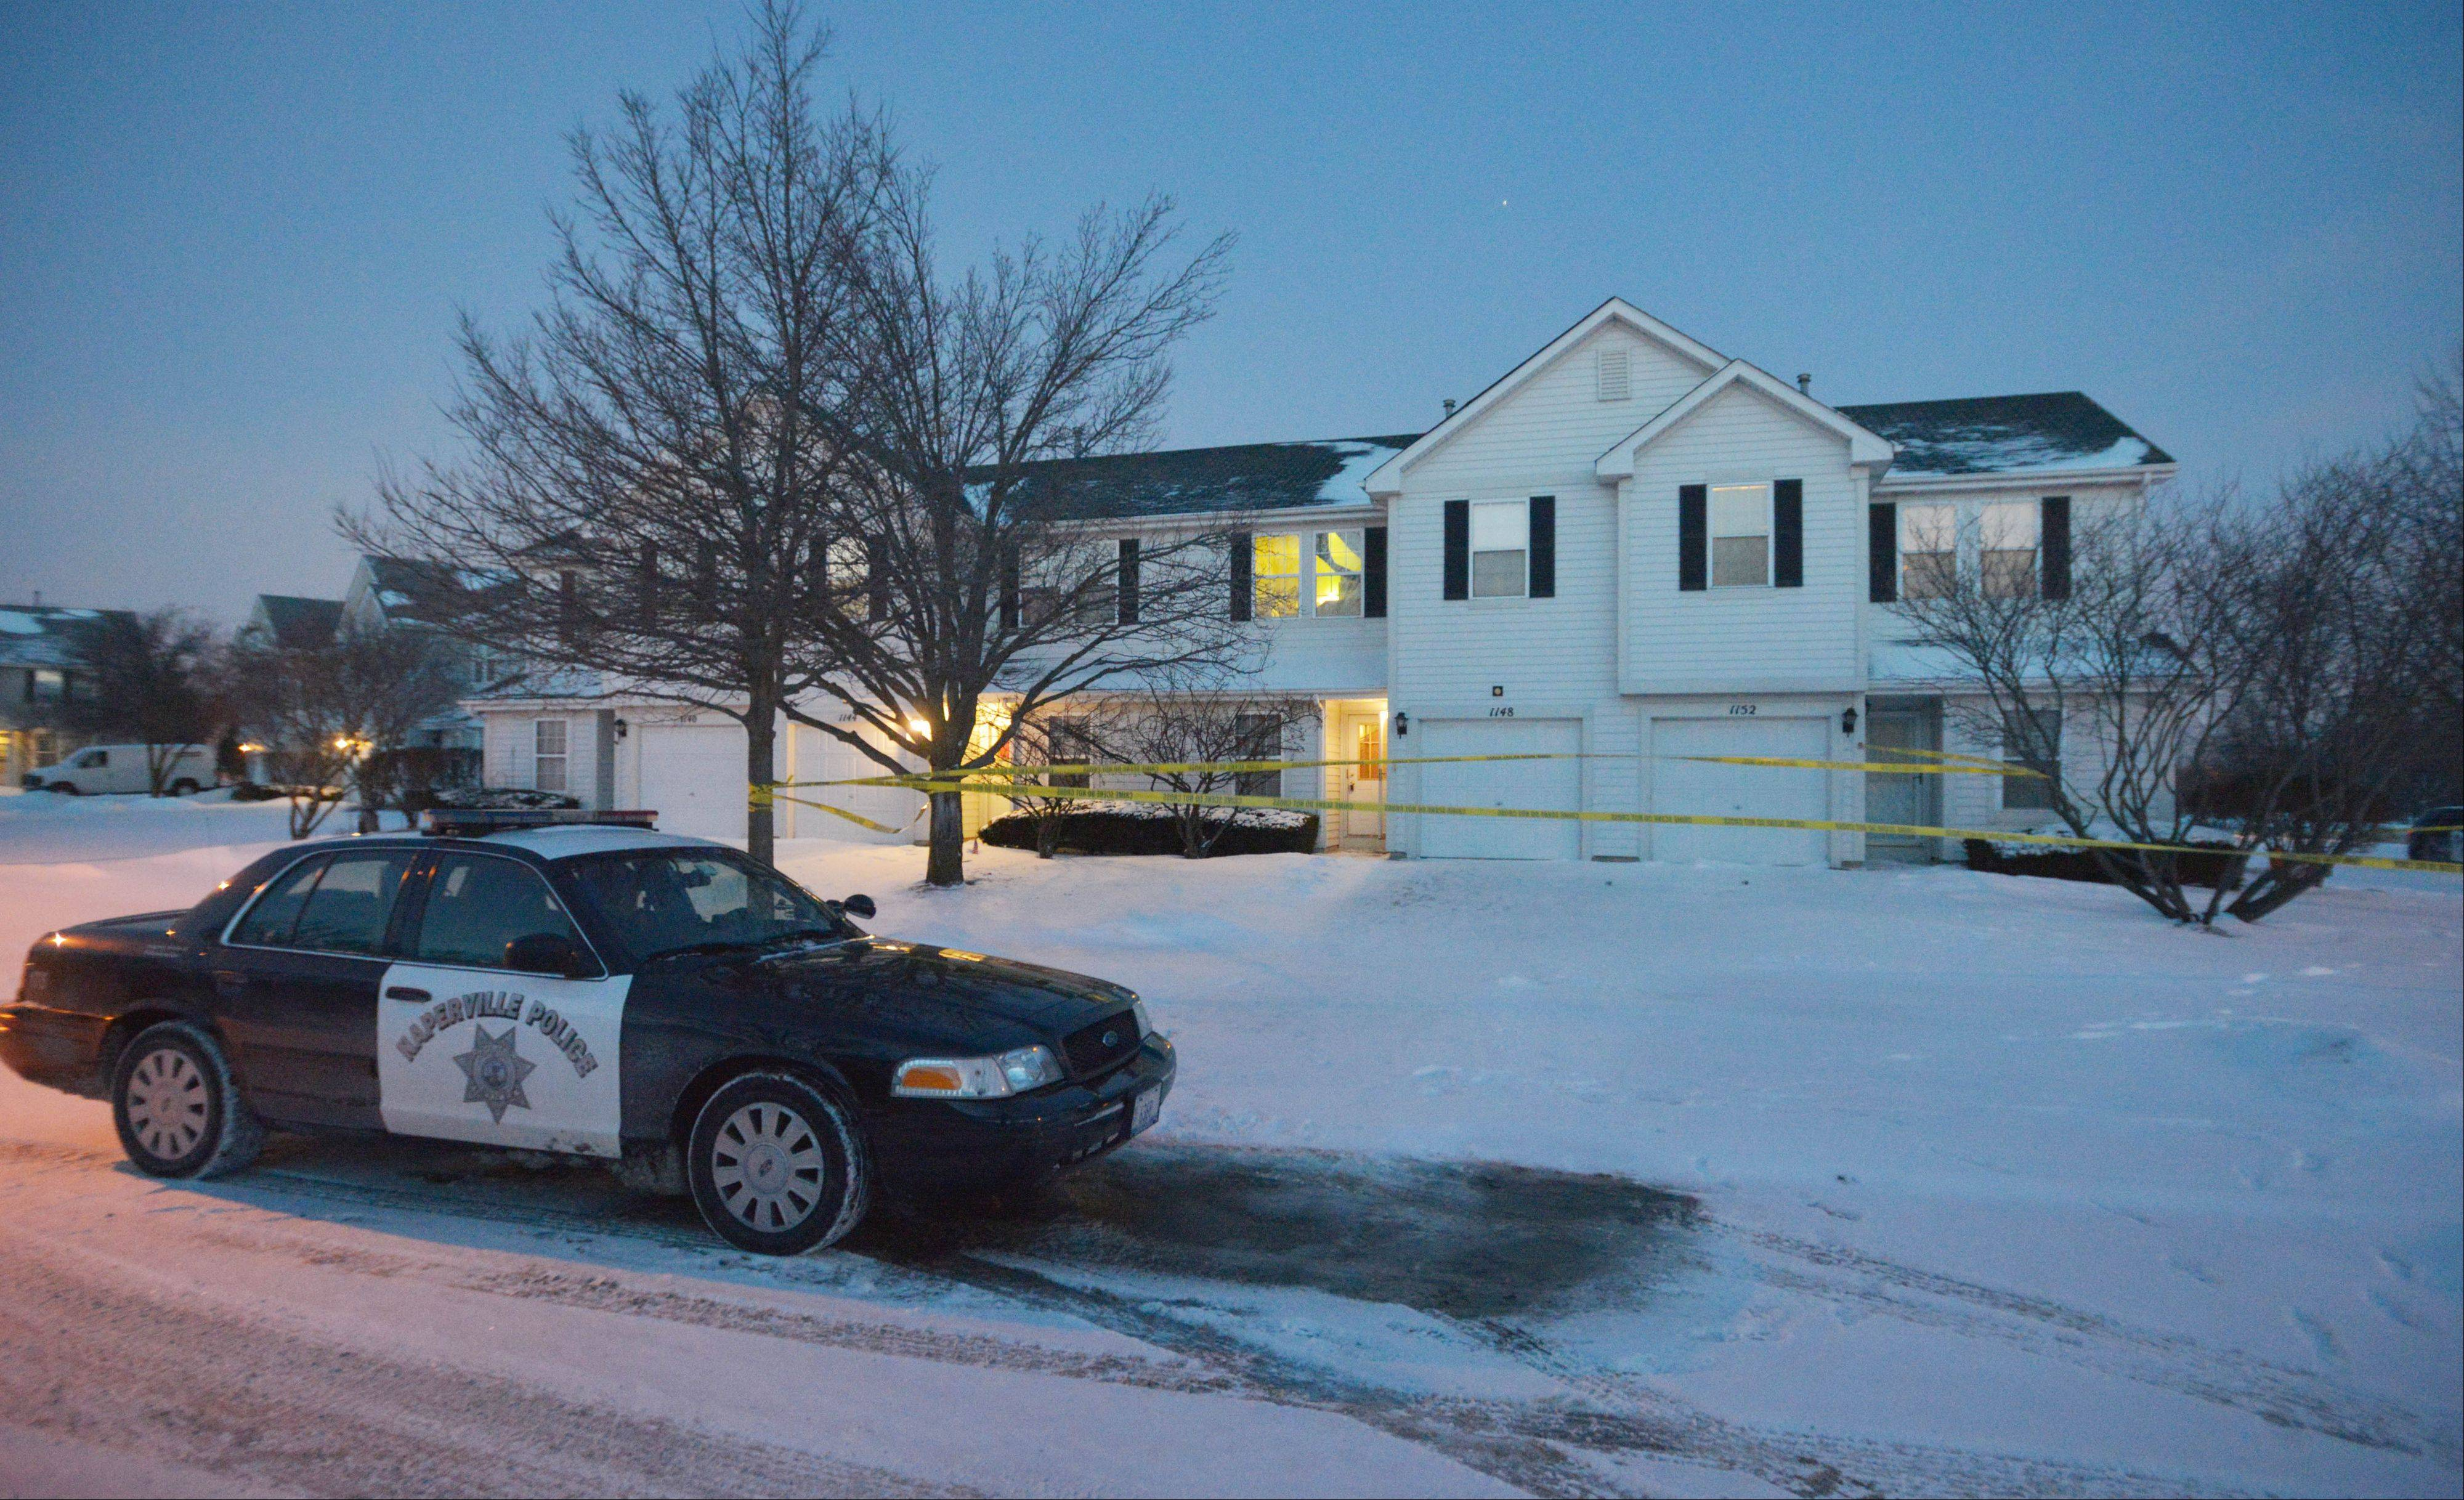 "Naperville police and DuPage County authorities said Thursday afternoon they are continuing to investigate the ""suspicious death"" of a man found dead Wednesday morning inside a townhouse on Vail Court in the city's Estes Park subdivision."